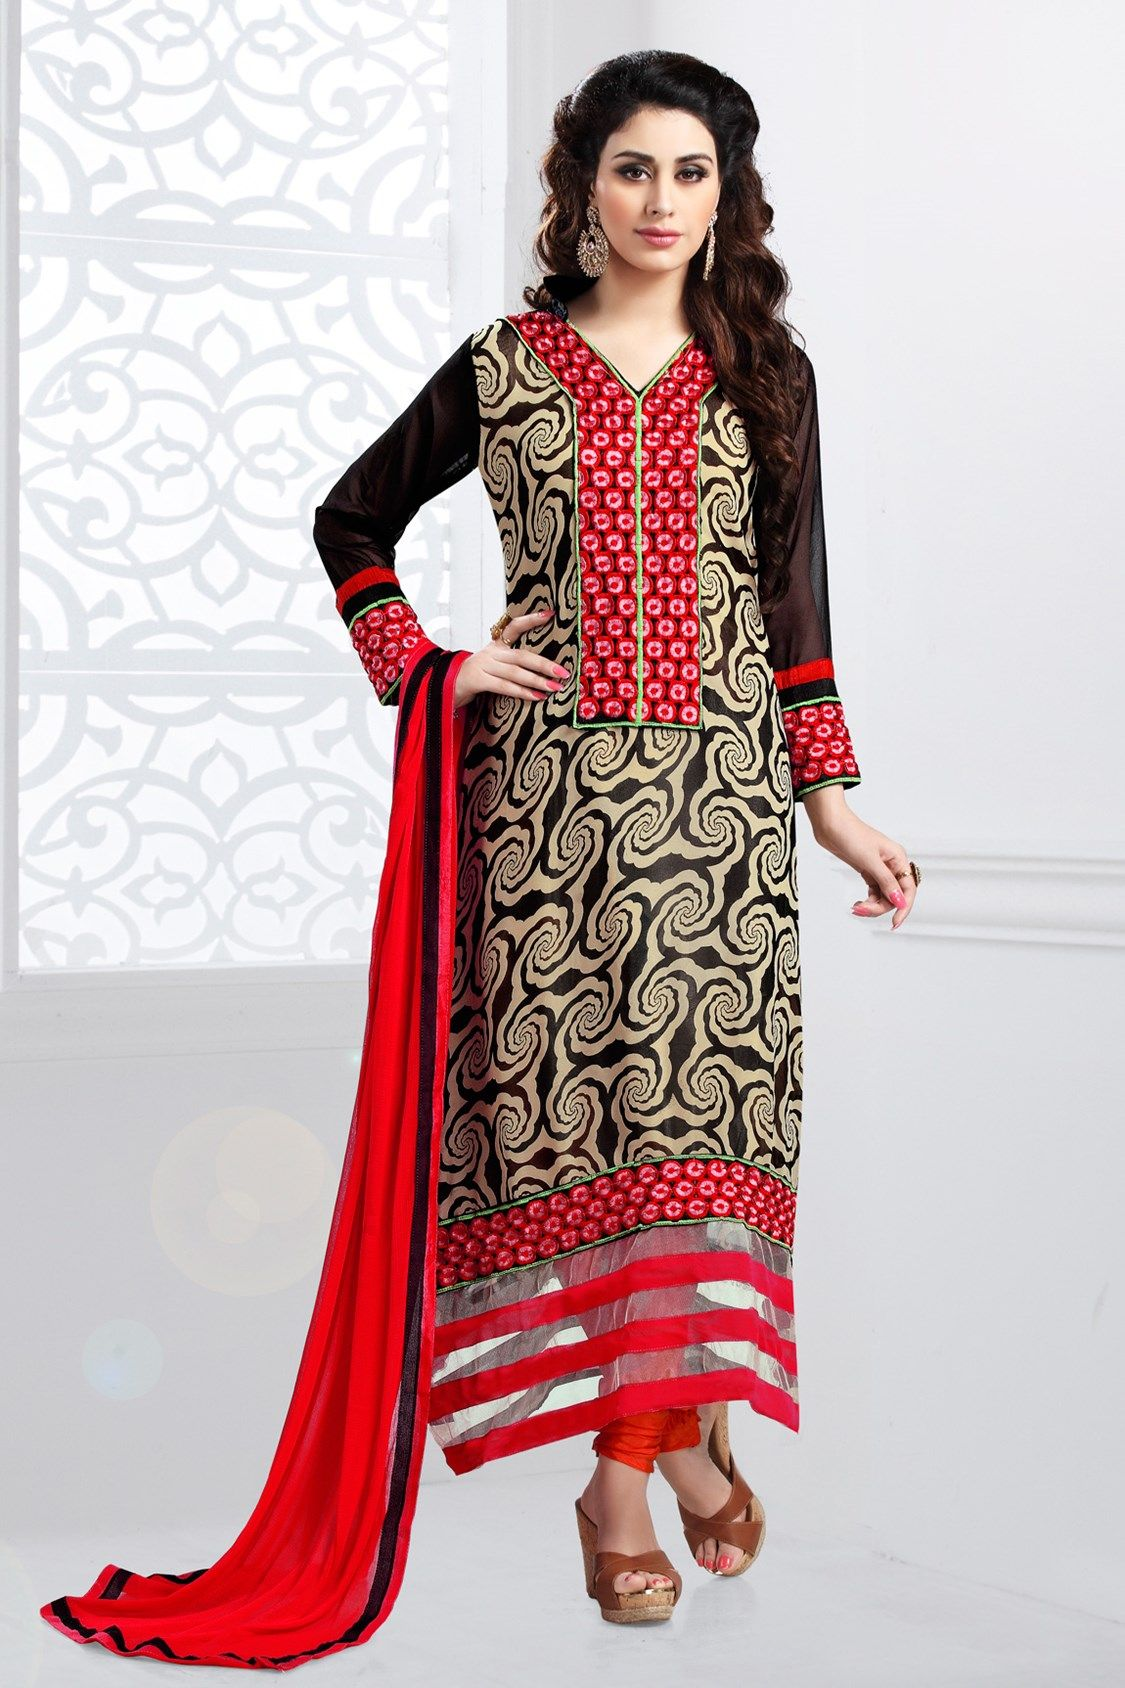 The Splendour #SalwarSuit collection is all about #Style and #PanacheOur Price: INR 1,648Shop Now: http://www.admyrin.com/pages/Splendour-Salwar-Suit/pgid-988194.aspx#SalwarKameez #Occasion #Georgette #Embroidery #COD #Party